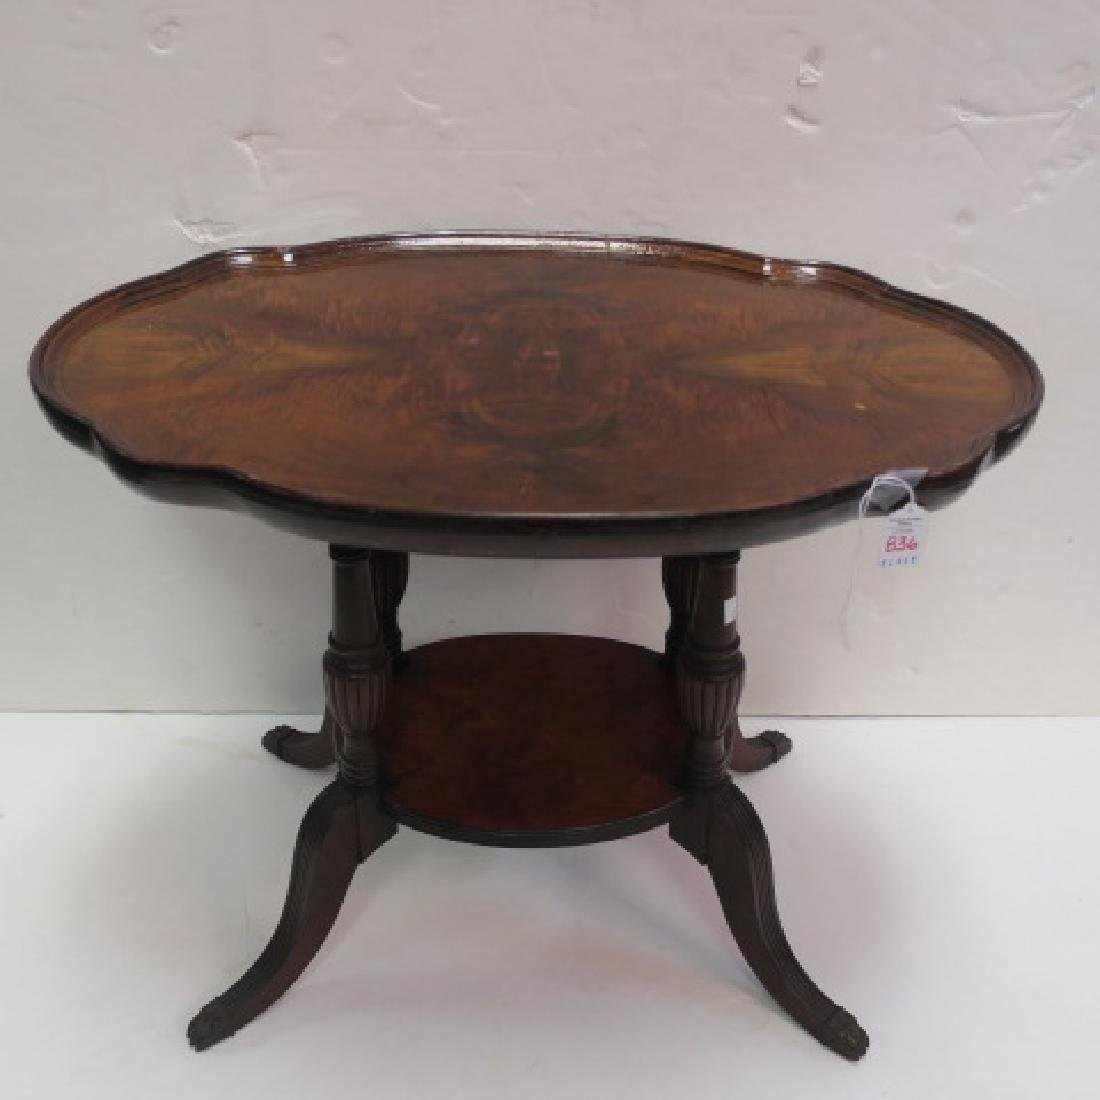 Figured Walnut Oval Two Tiered Side Table: